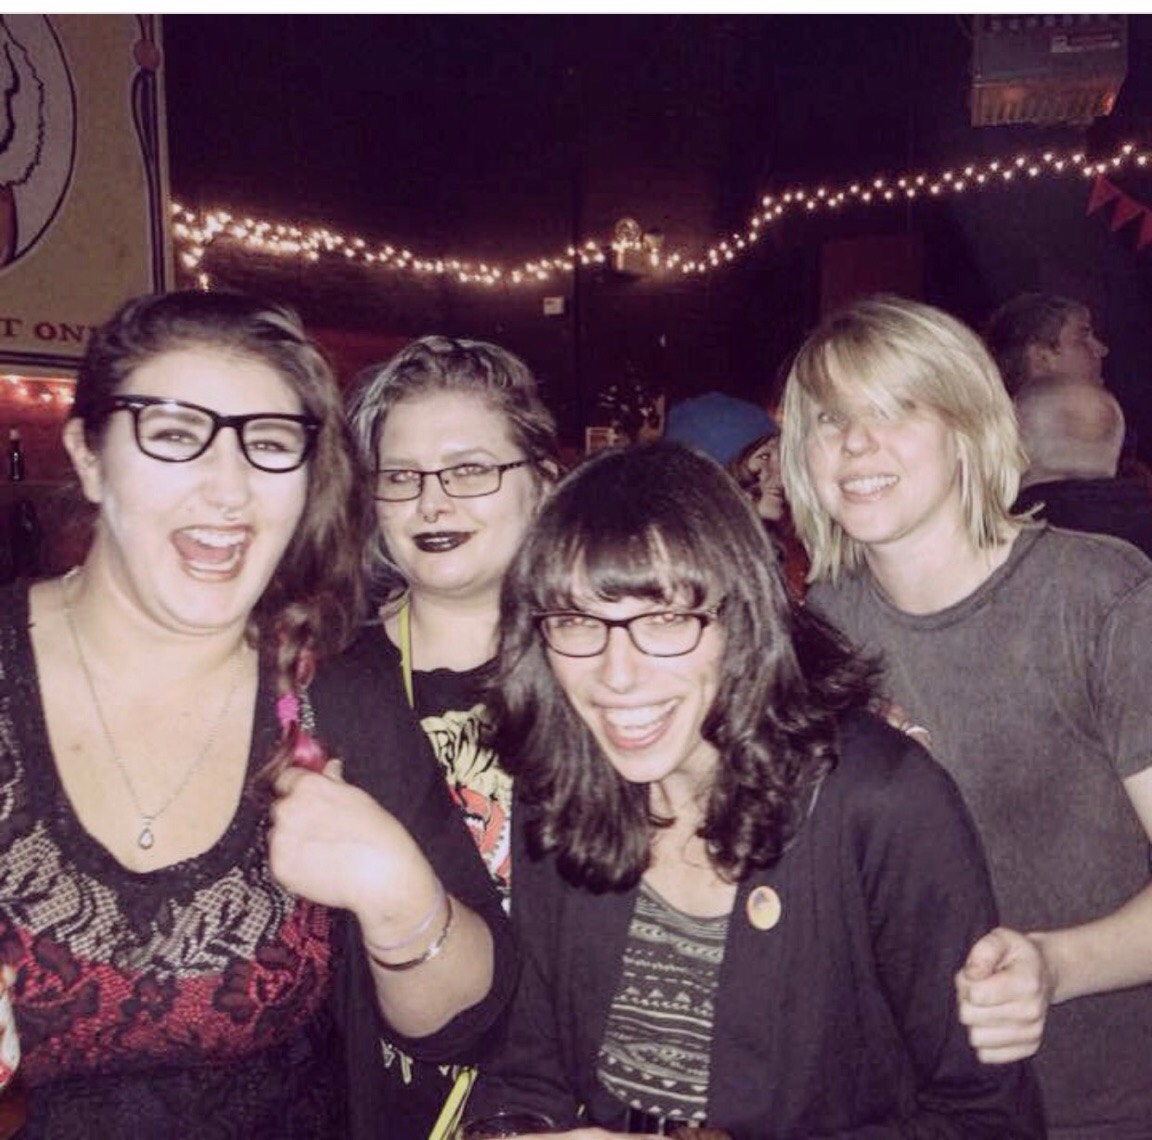 Brittany and her Portland besties, the Buffy gang: Norita, Brittany, Kaitlyn and Brooke.